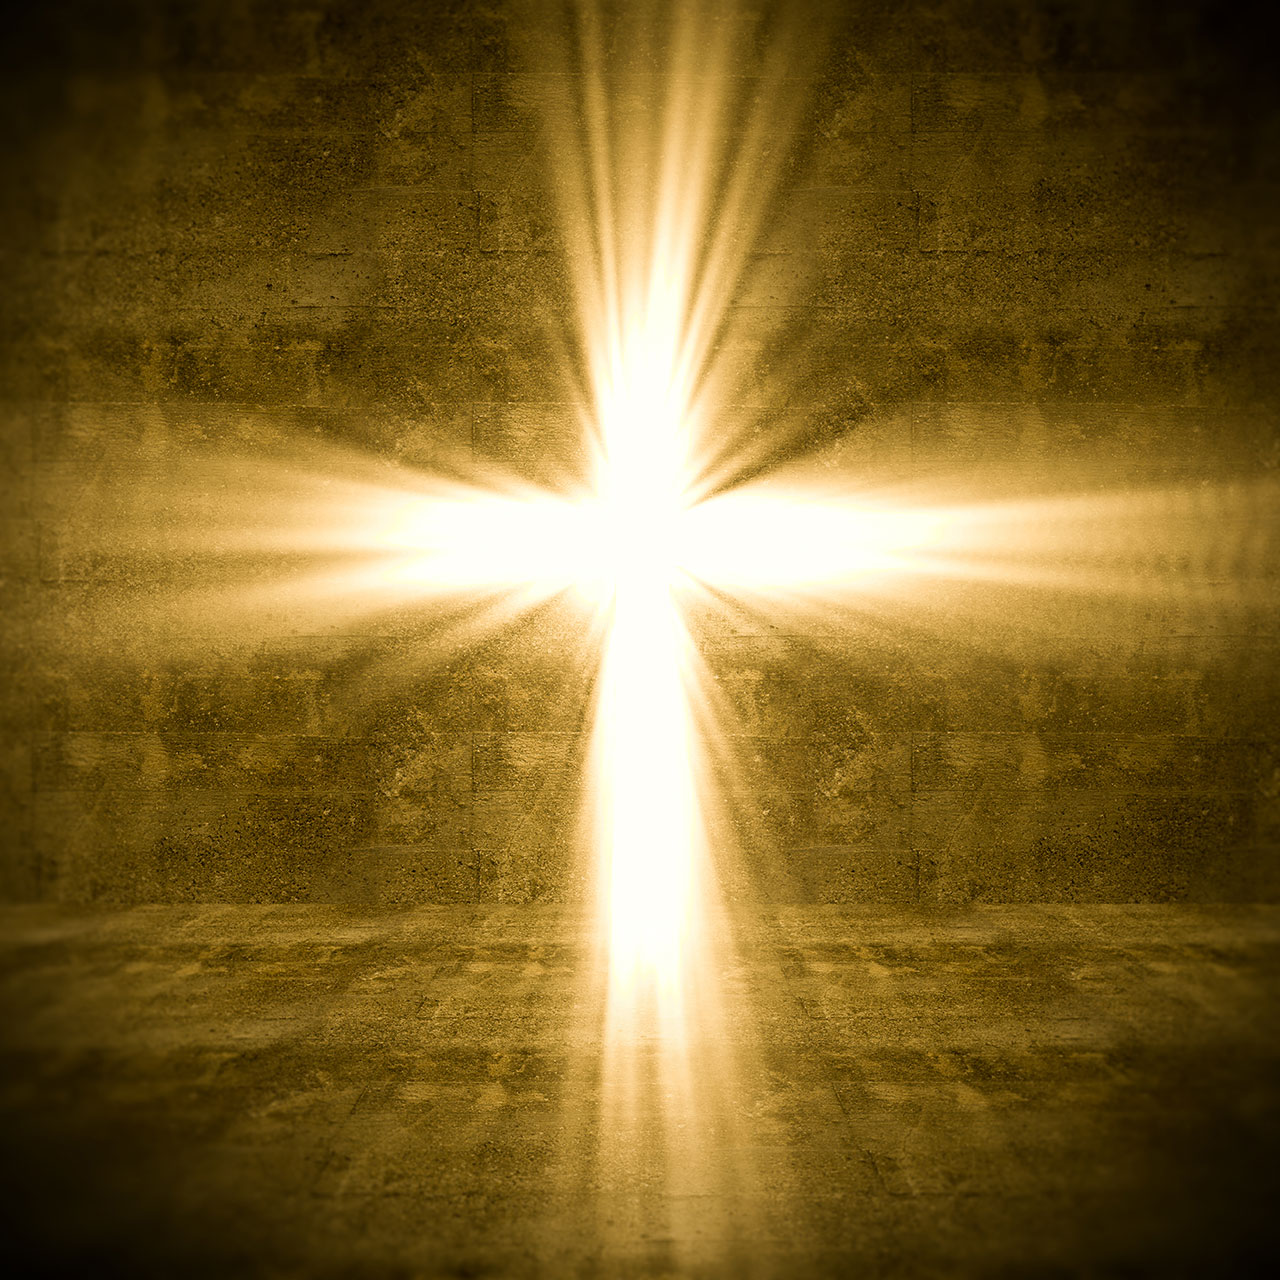 Shine: I had preached against every sin, but one